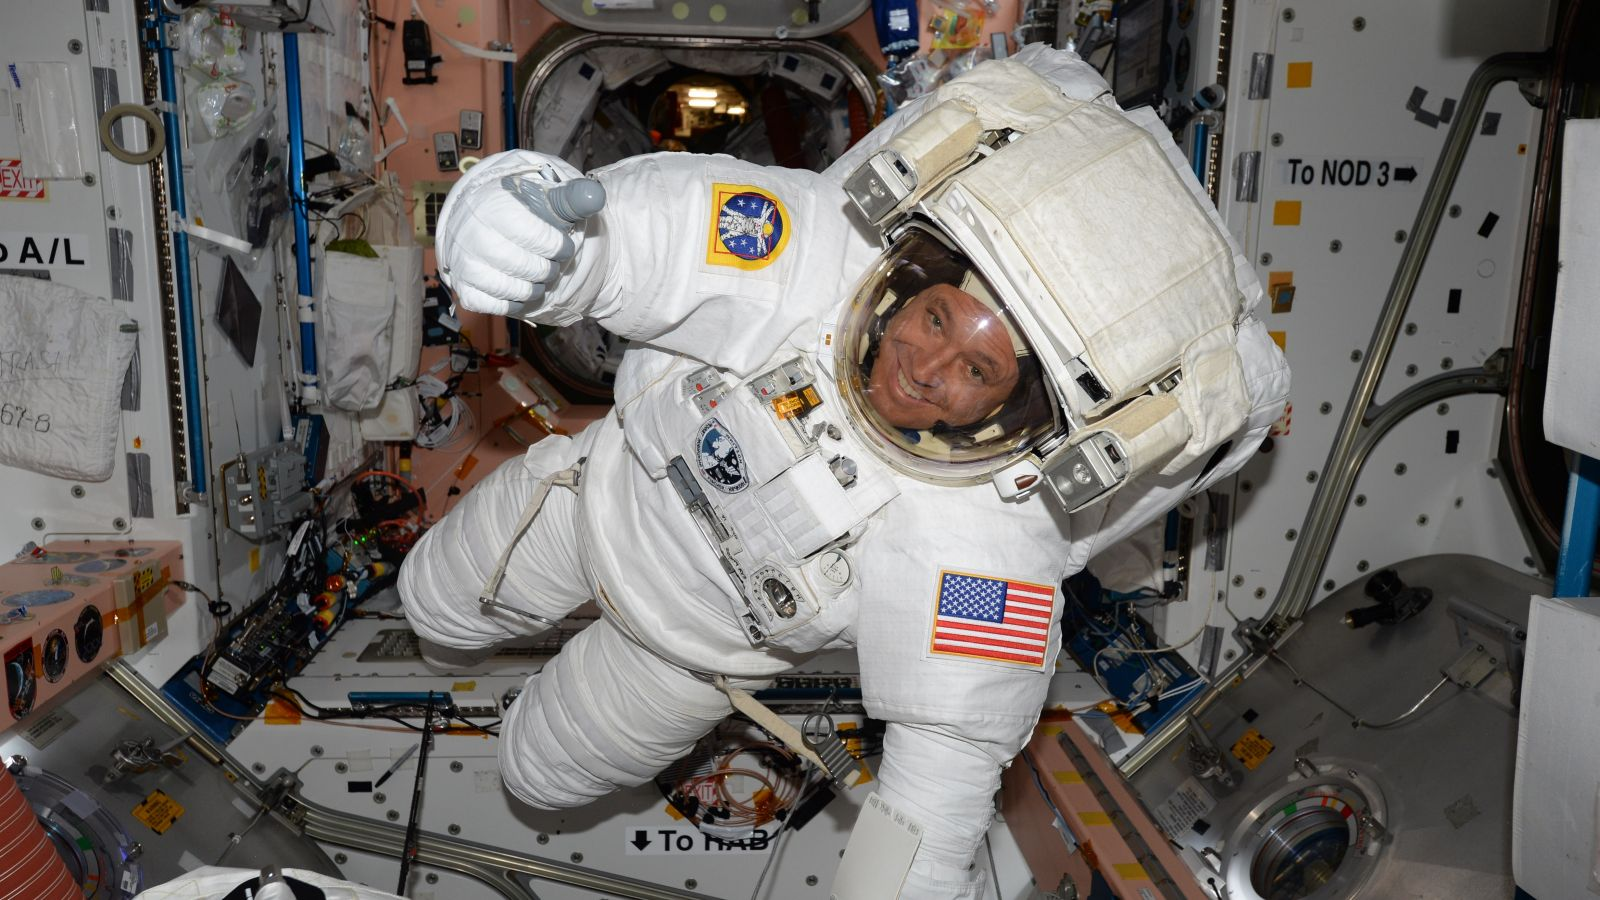 ISS spacewalk: Fischer spacesuit test May 11